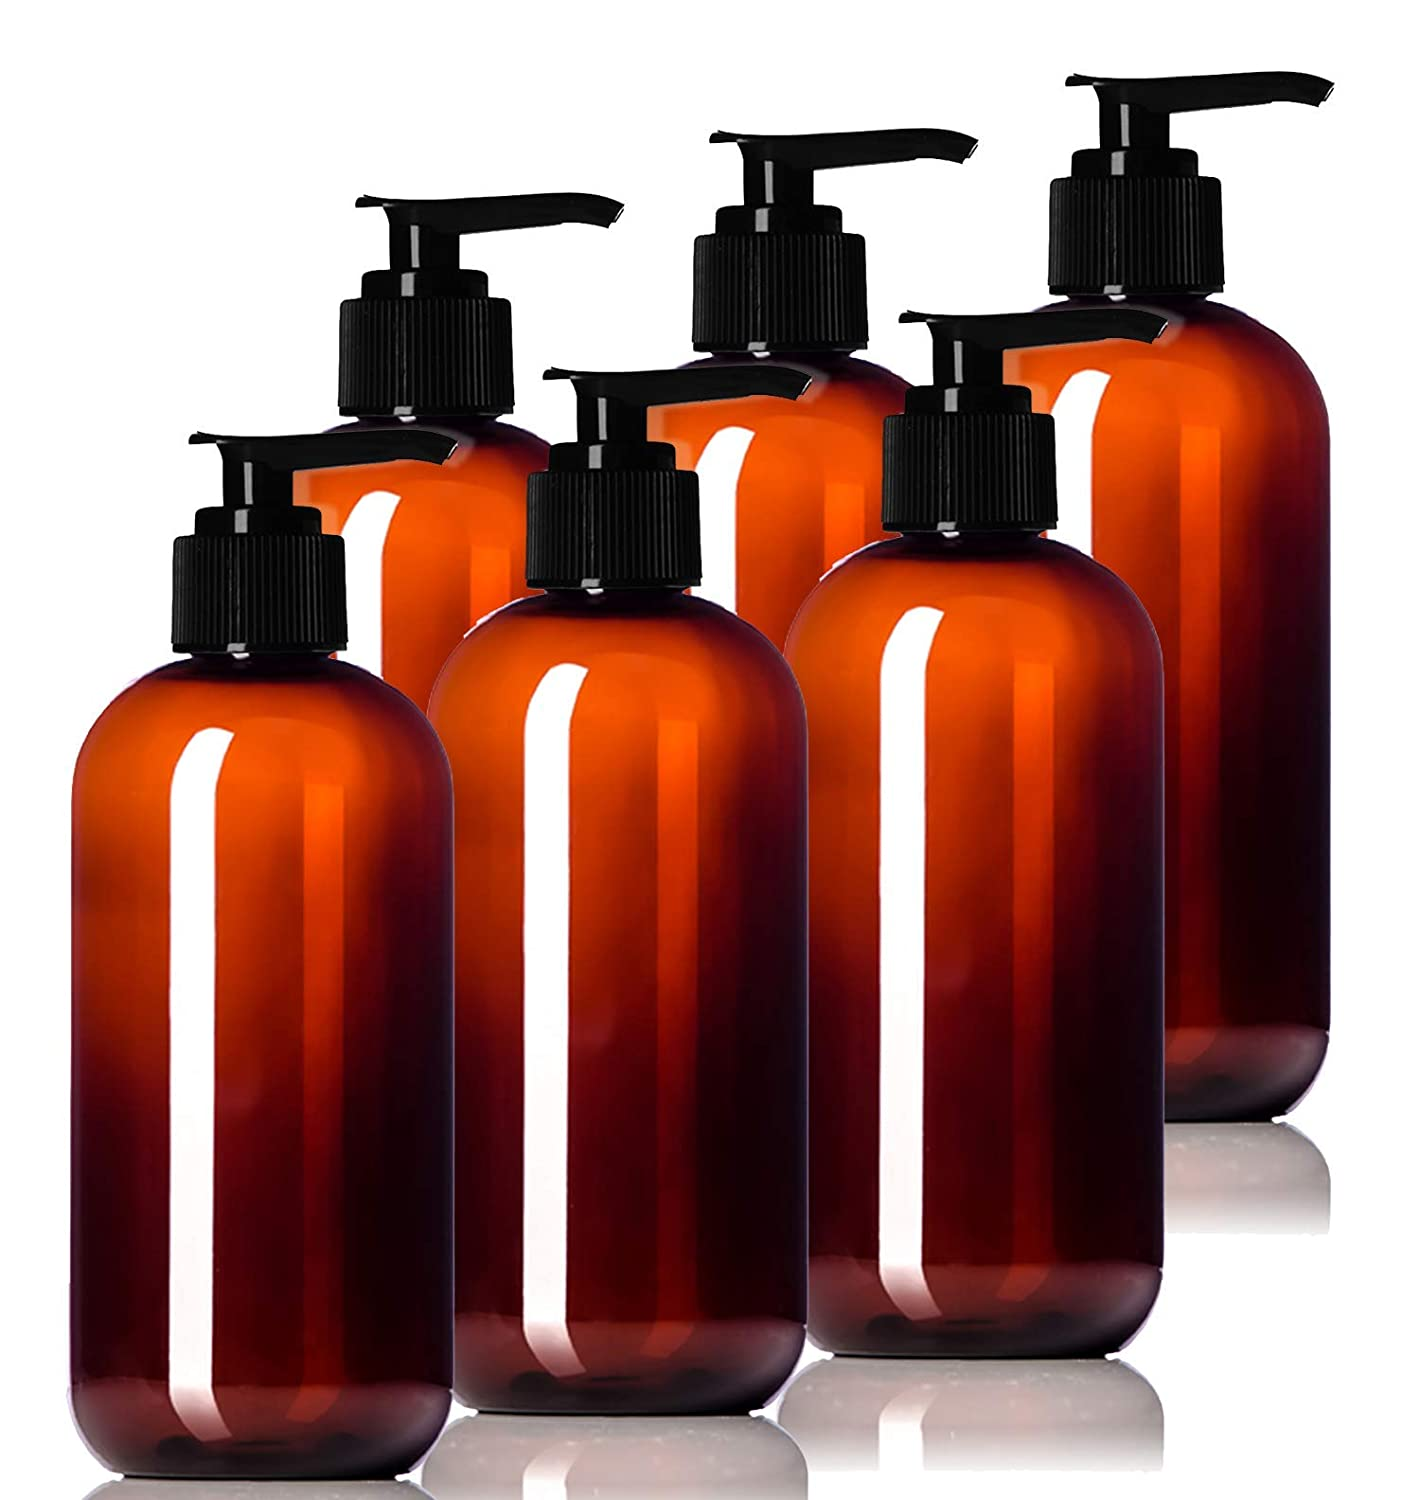 8oz Plastic Amber Bottles (6 Pack) BPA-Free Squeeze Containers with Pump Cap, Labels Included